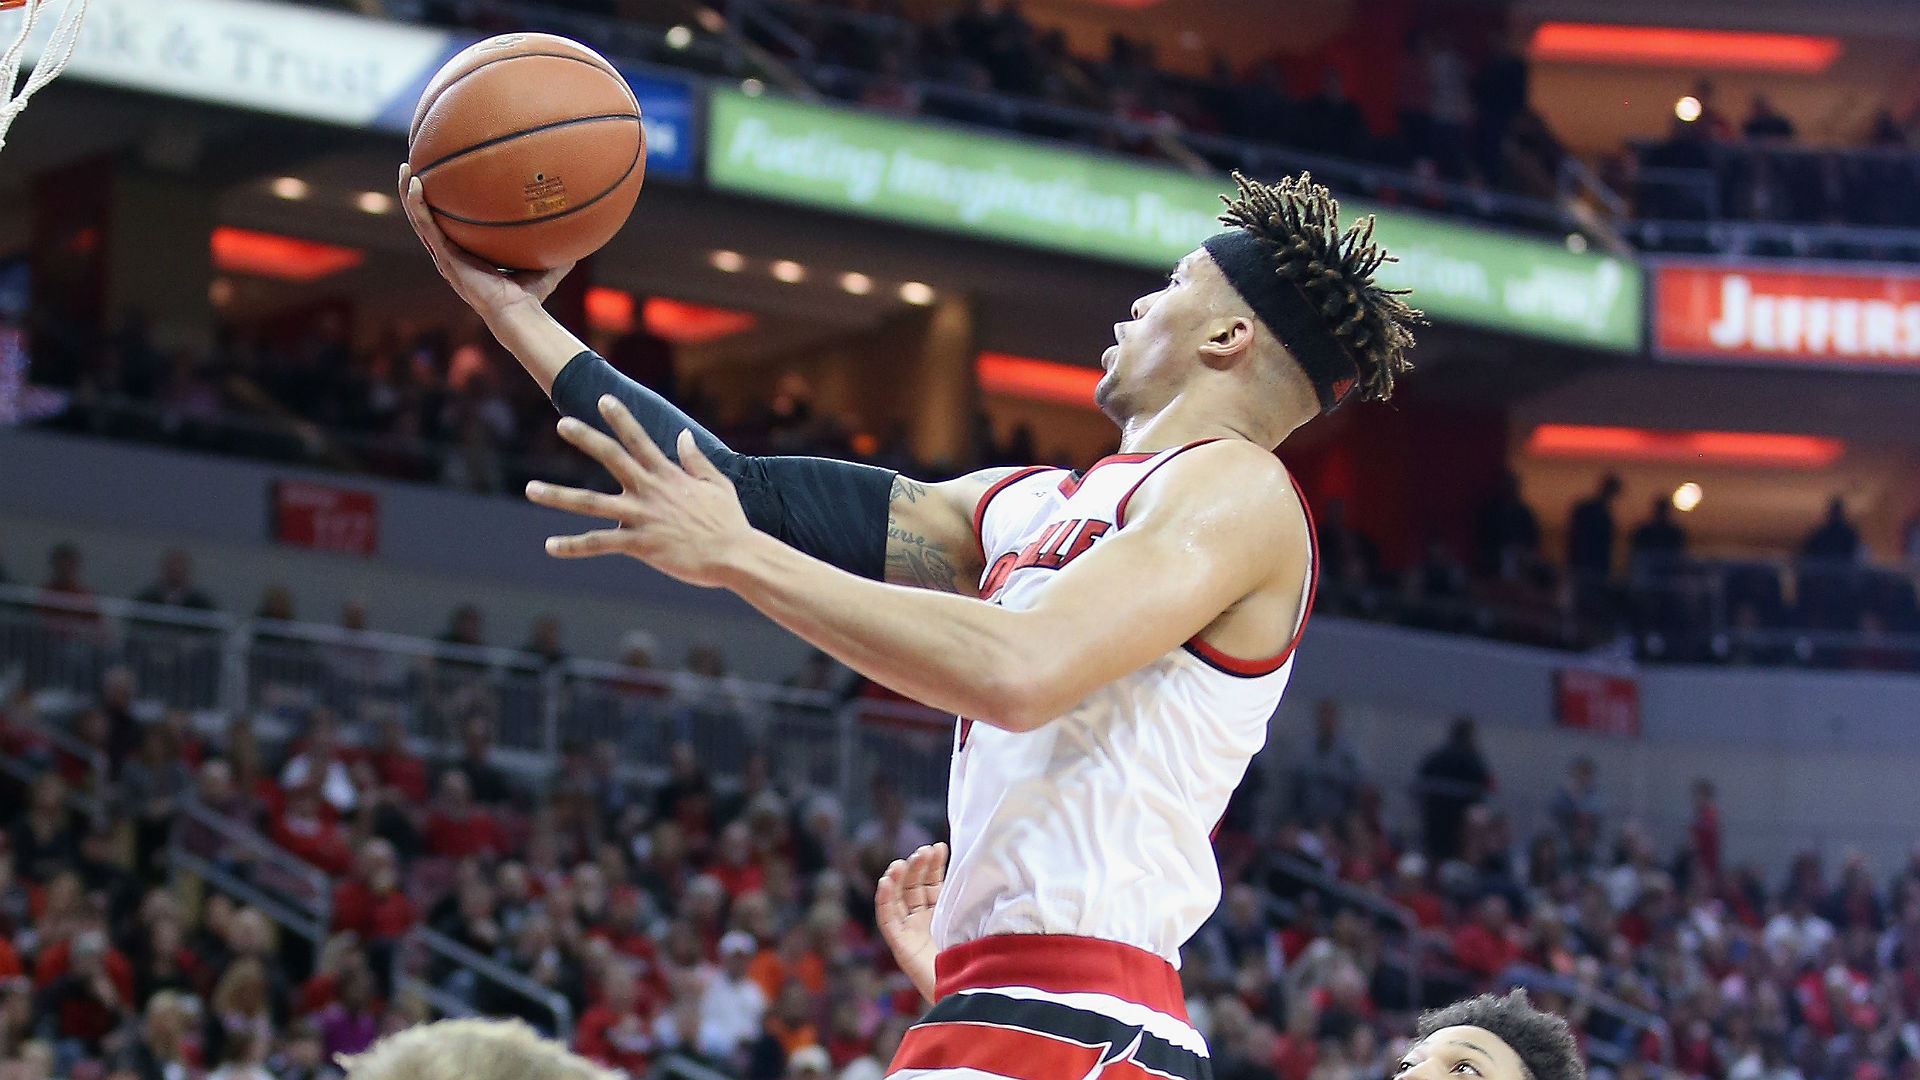 NBA free agency rumors: Warriors sign Steph Curry's future brother-in-law Damion Lee to 2-way contract